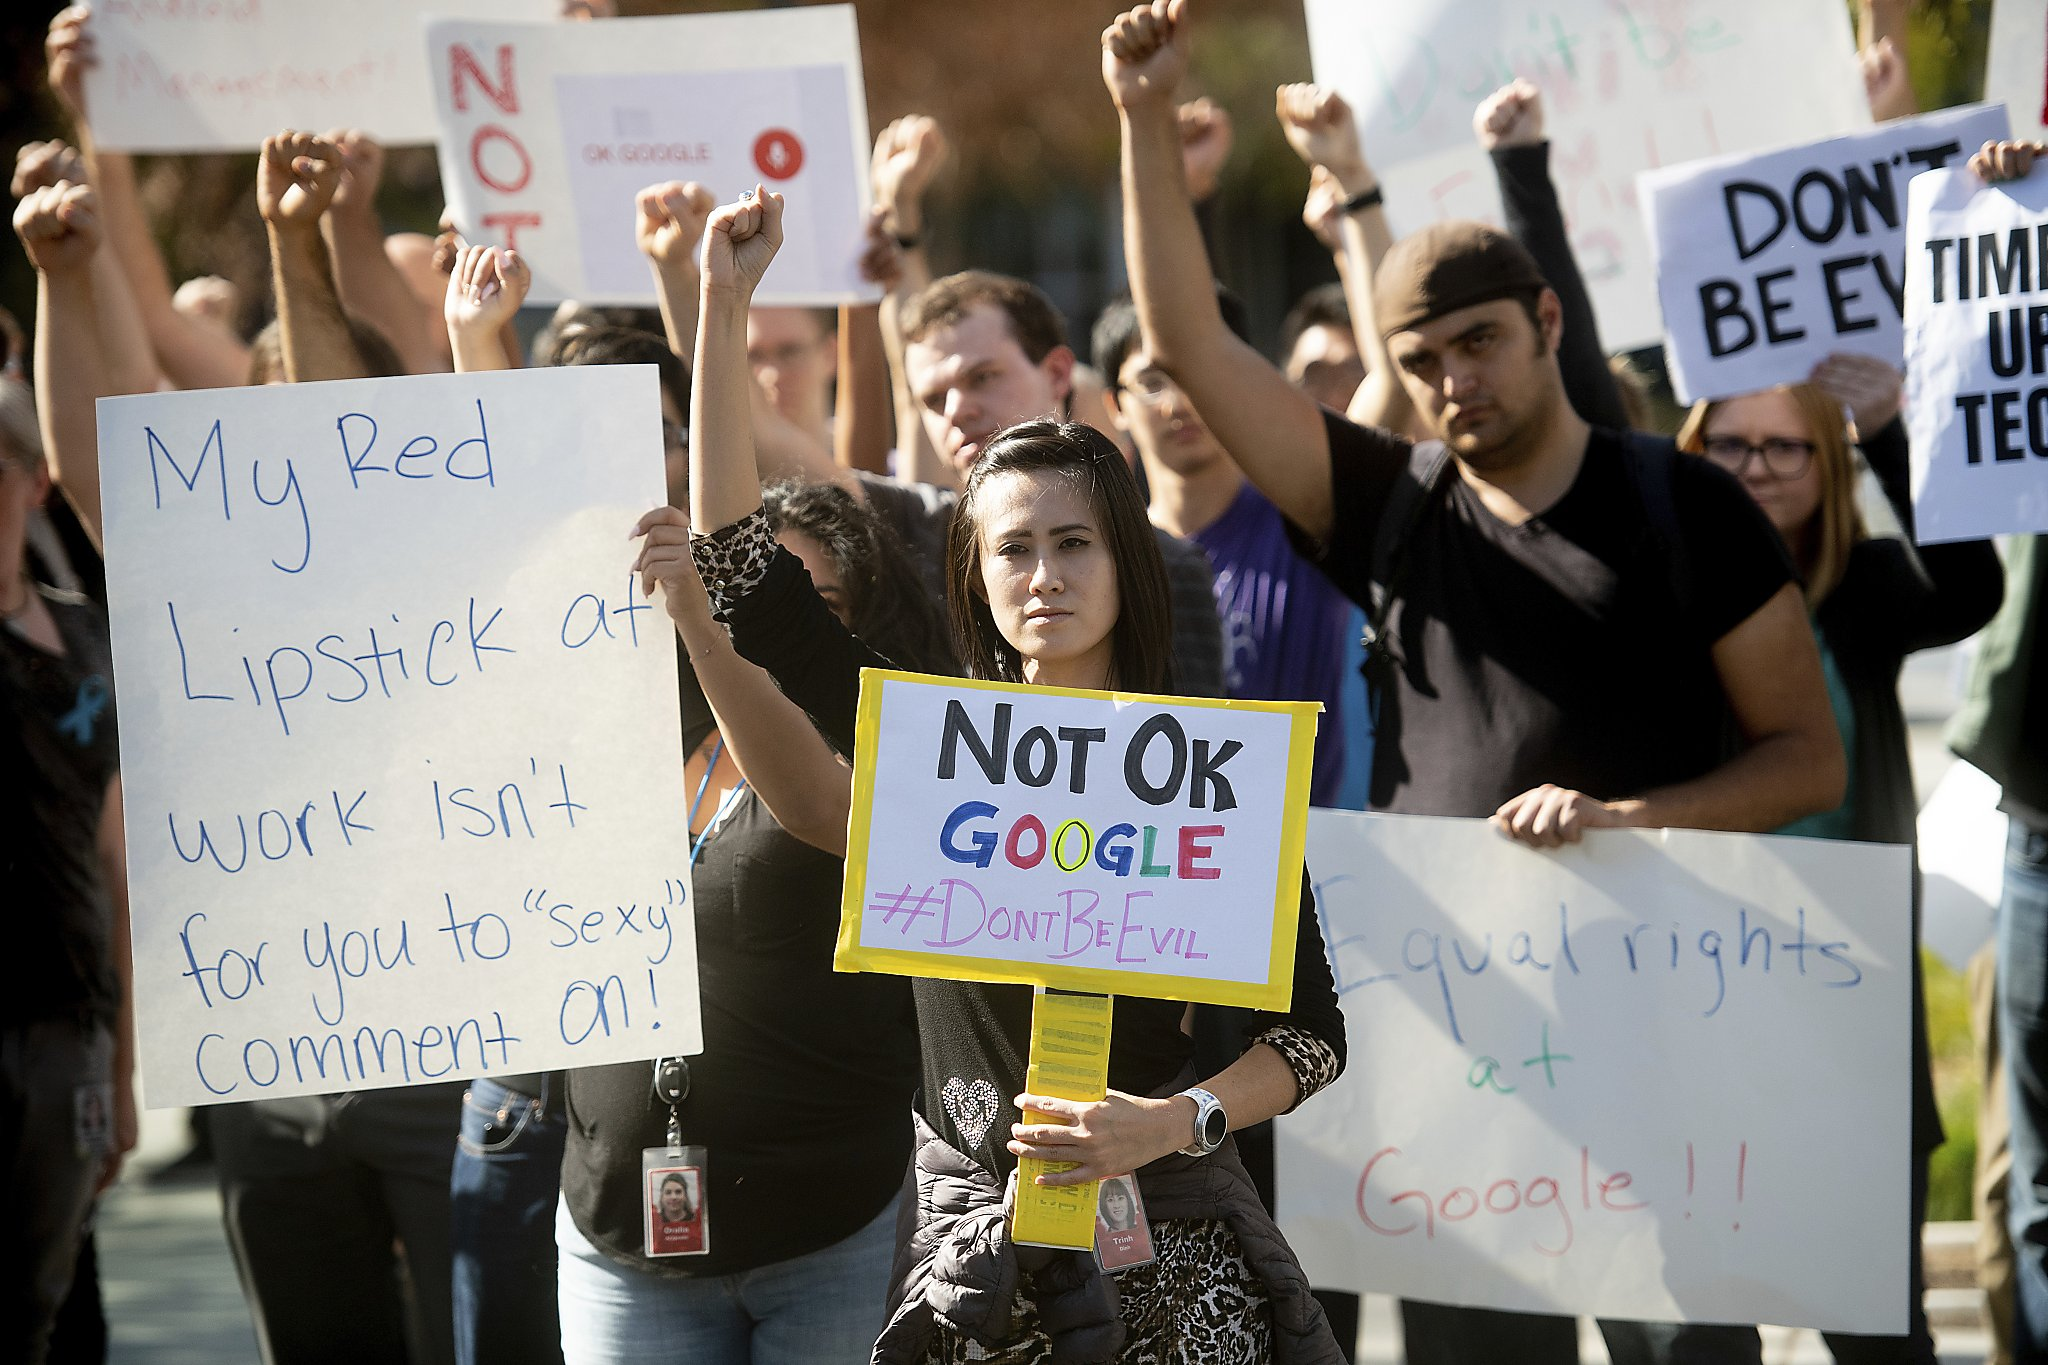 www.sfchronicle.com: Tech unions in Silicon Valley have been rare. Here's why that's changing